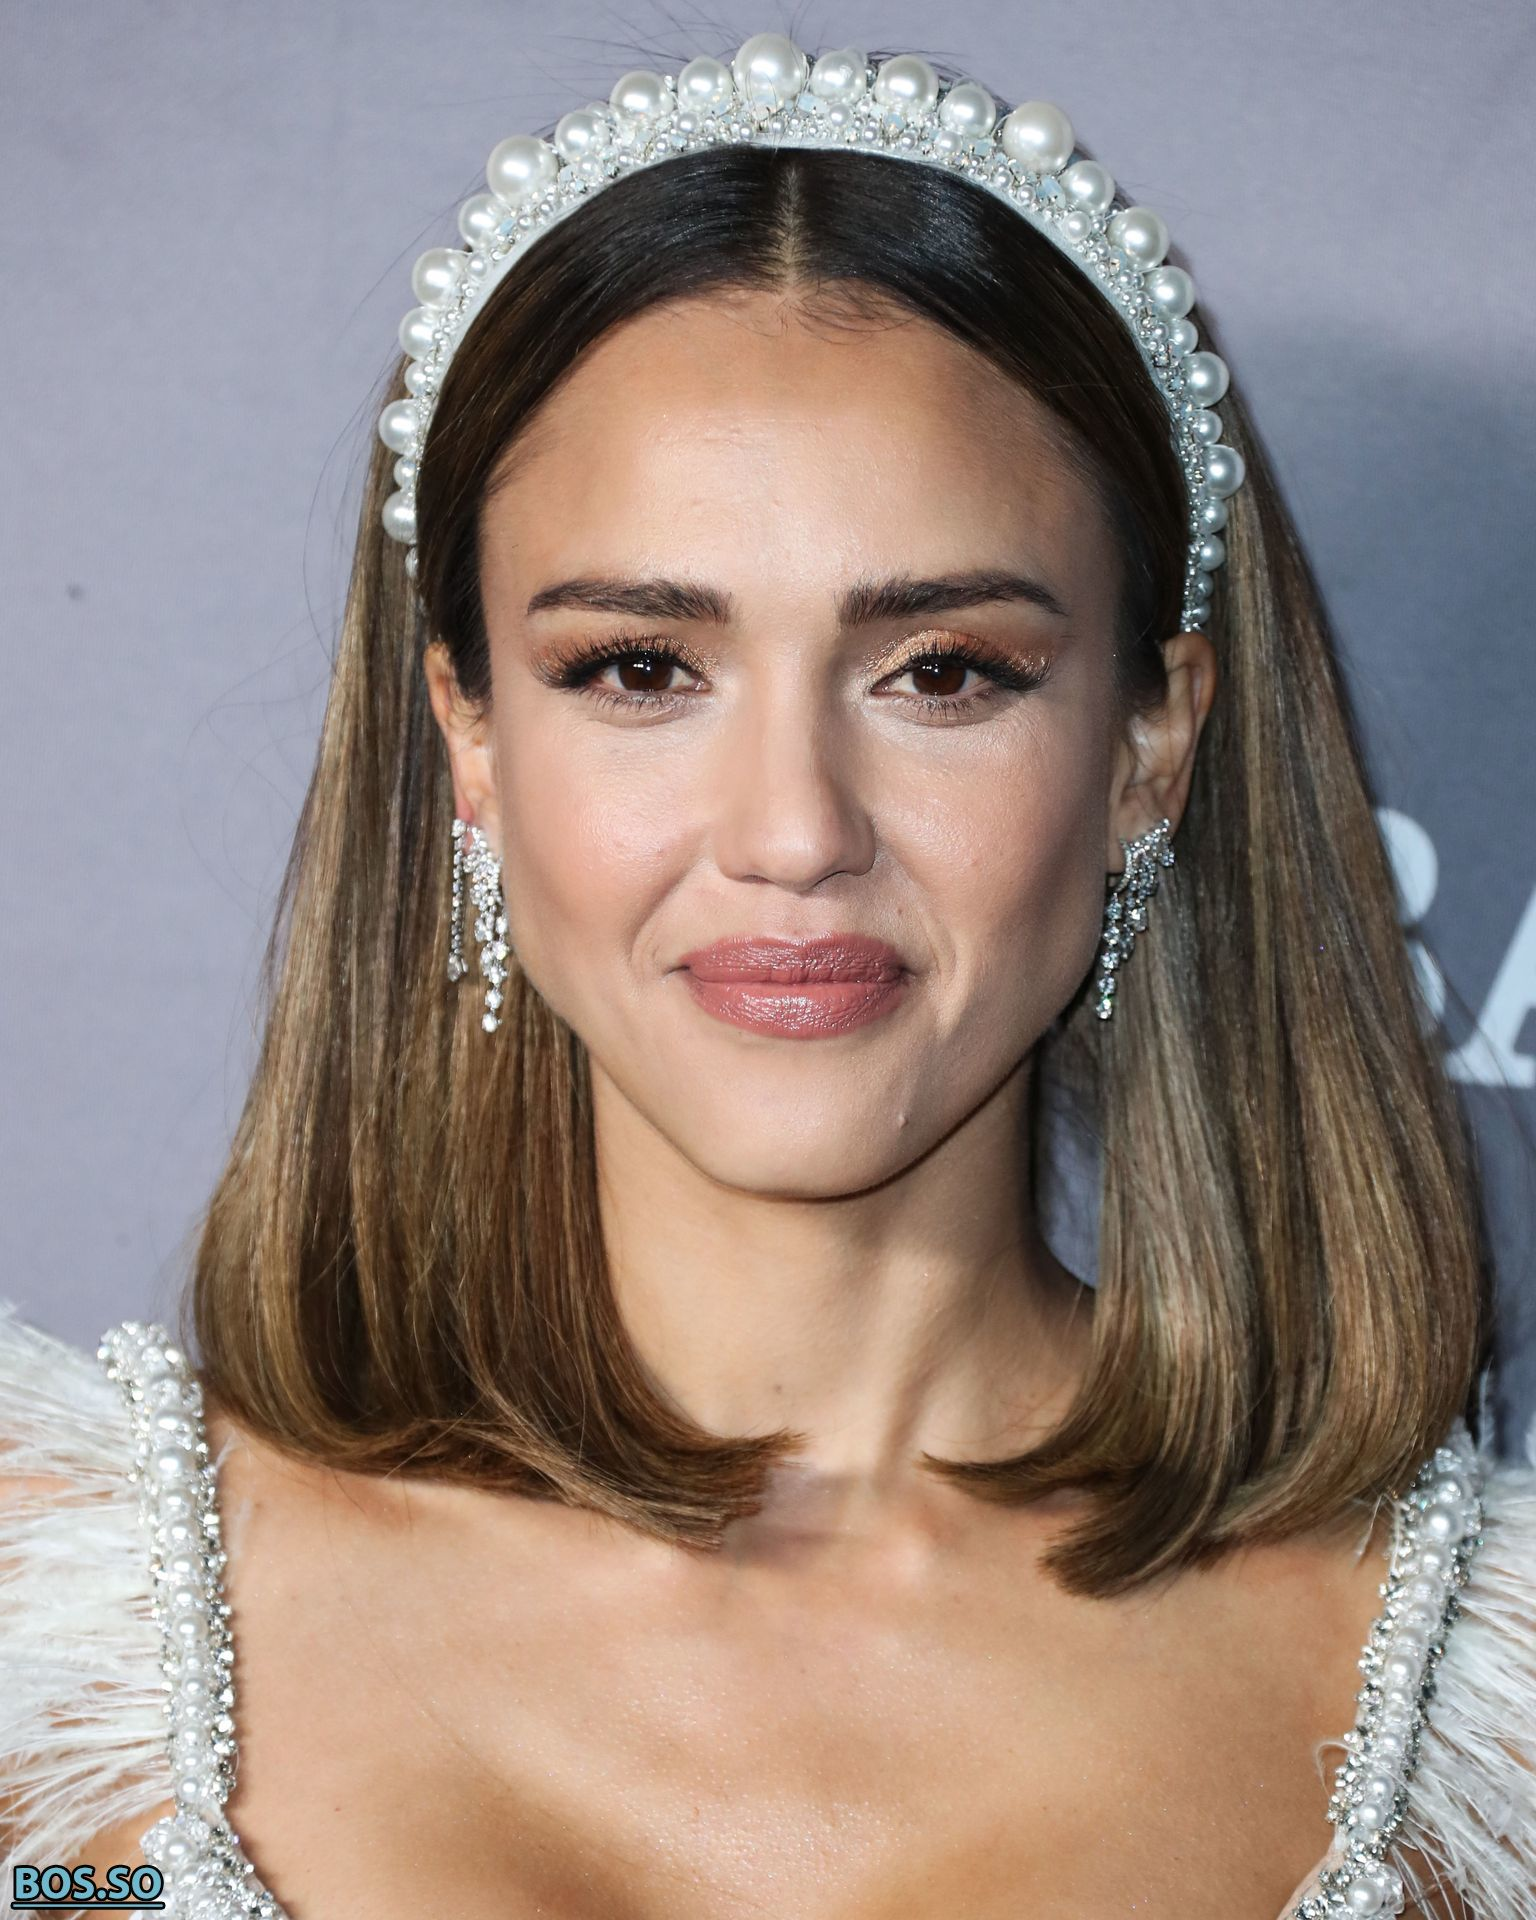 Jessica Alba Nude / Naked in Transparent Dress - The Fappening